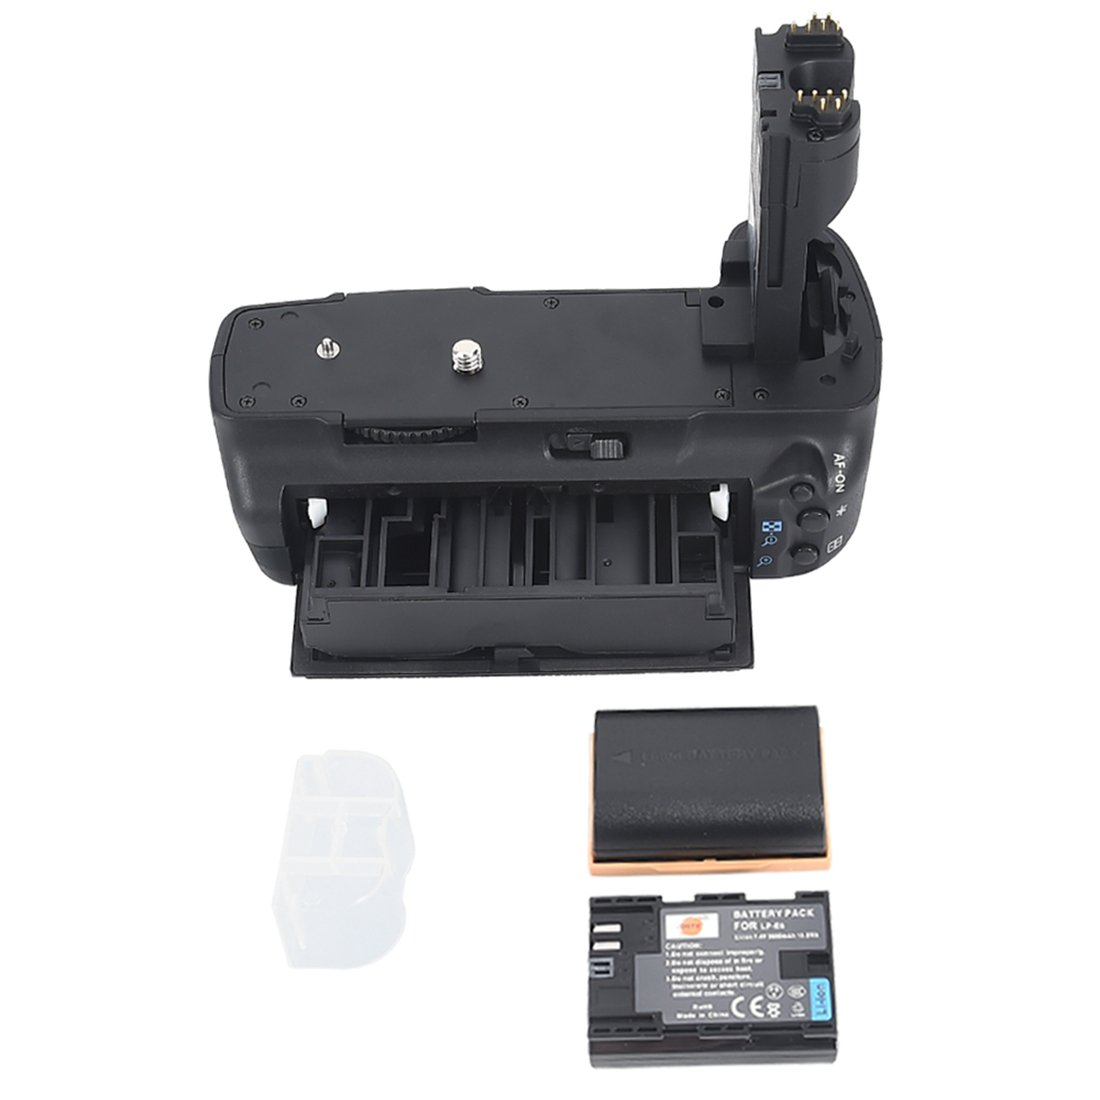 Dste® remote battery grip for canon eos 5d mark ii 5d2: amazon. Co.